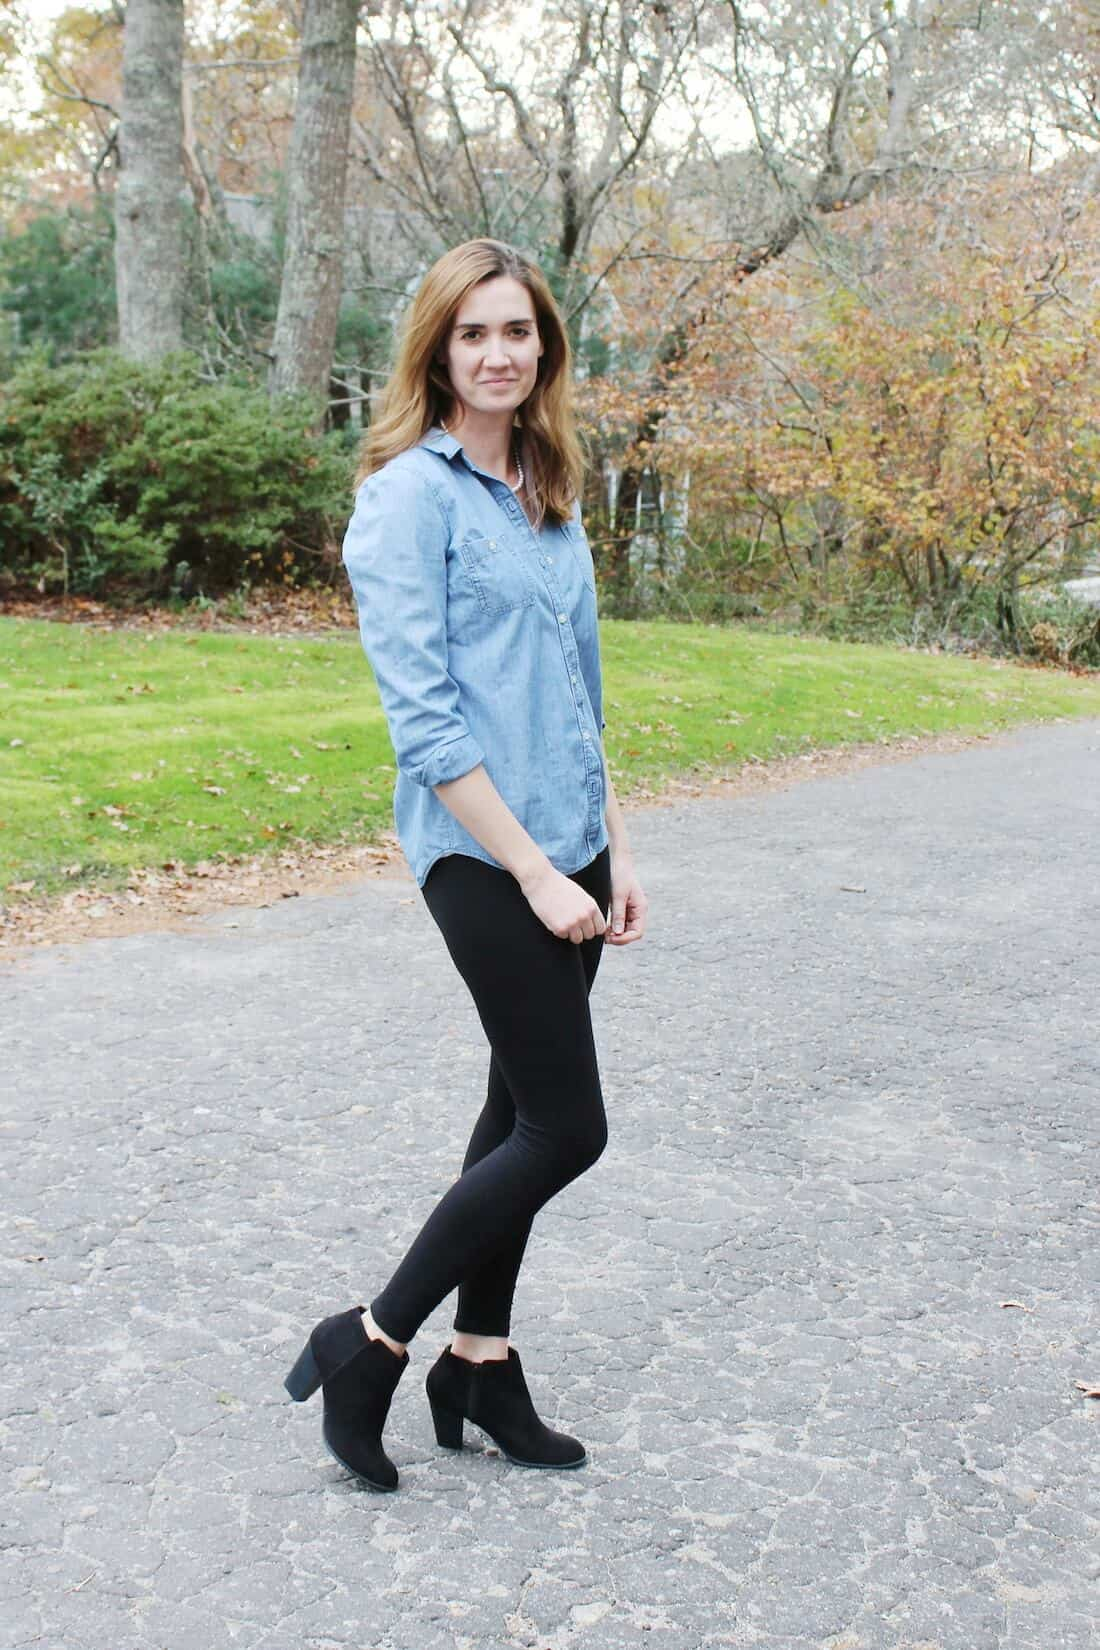 Maternity Fashion Idea: Leggings with Chambray Top for first trimester outfit